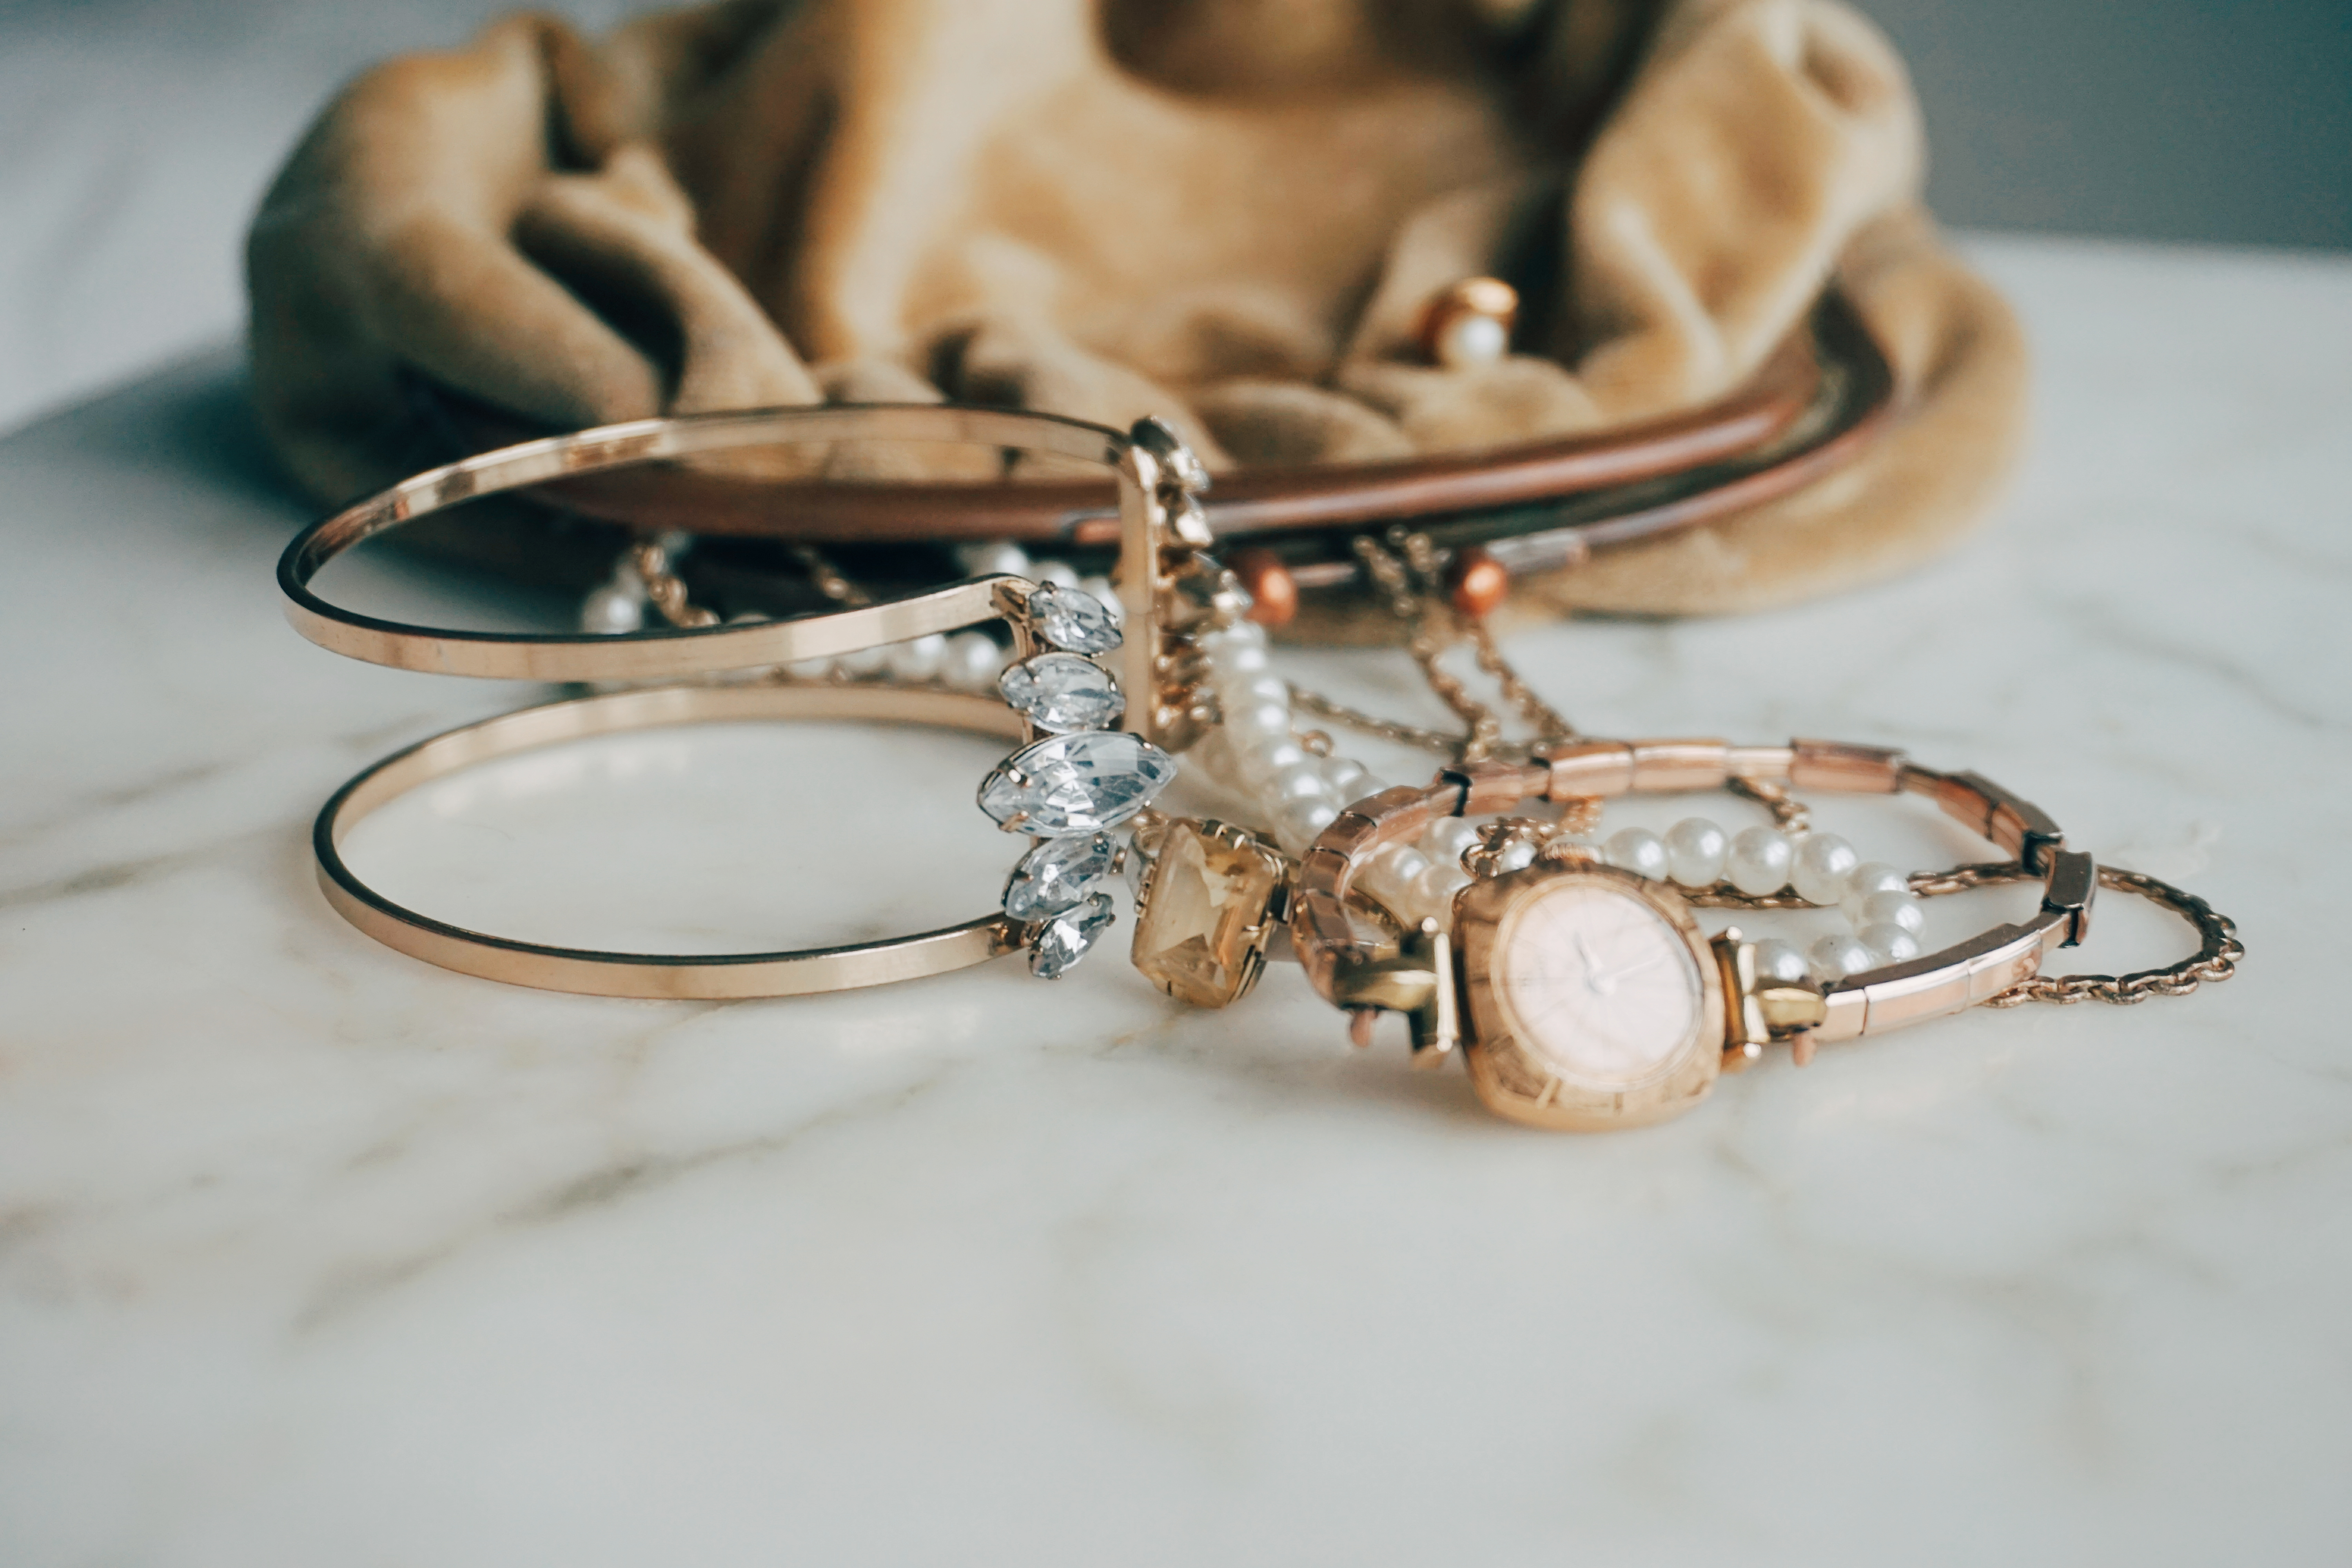 Make Your Jewelry Shine Like New With This Simple Hack